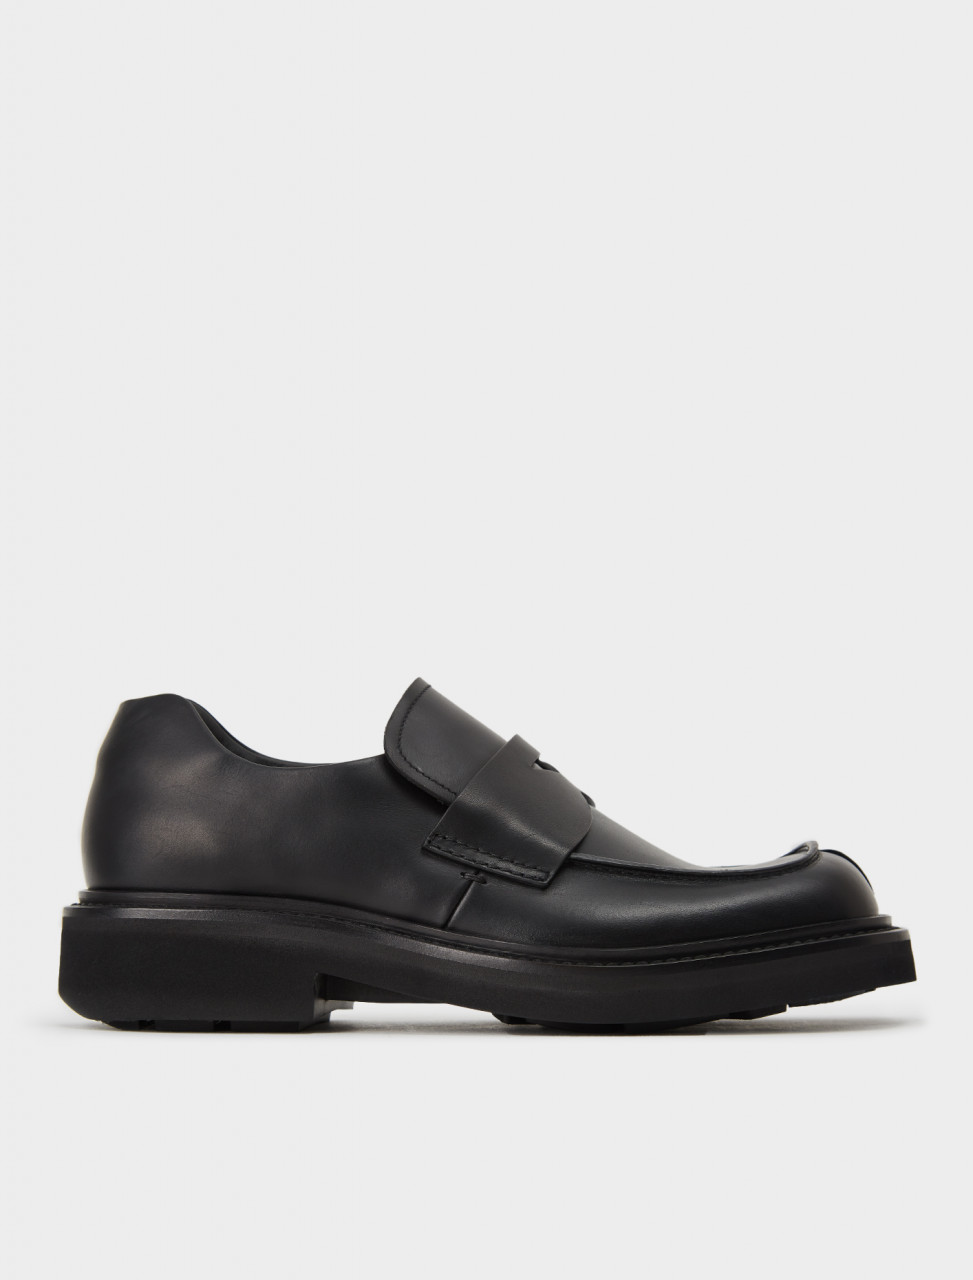 242-2DG110-LO9-F0002 PRADA BLOCK SOLE LOAFER IN BLACK